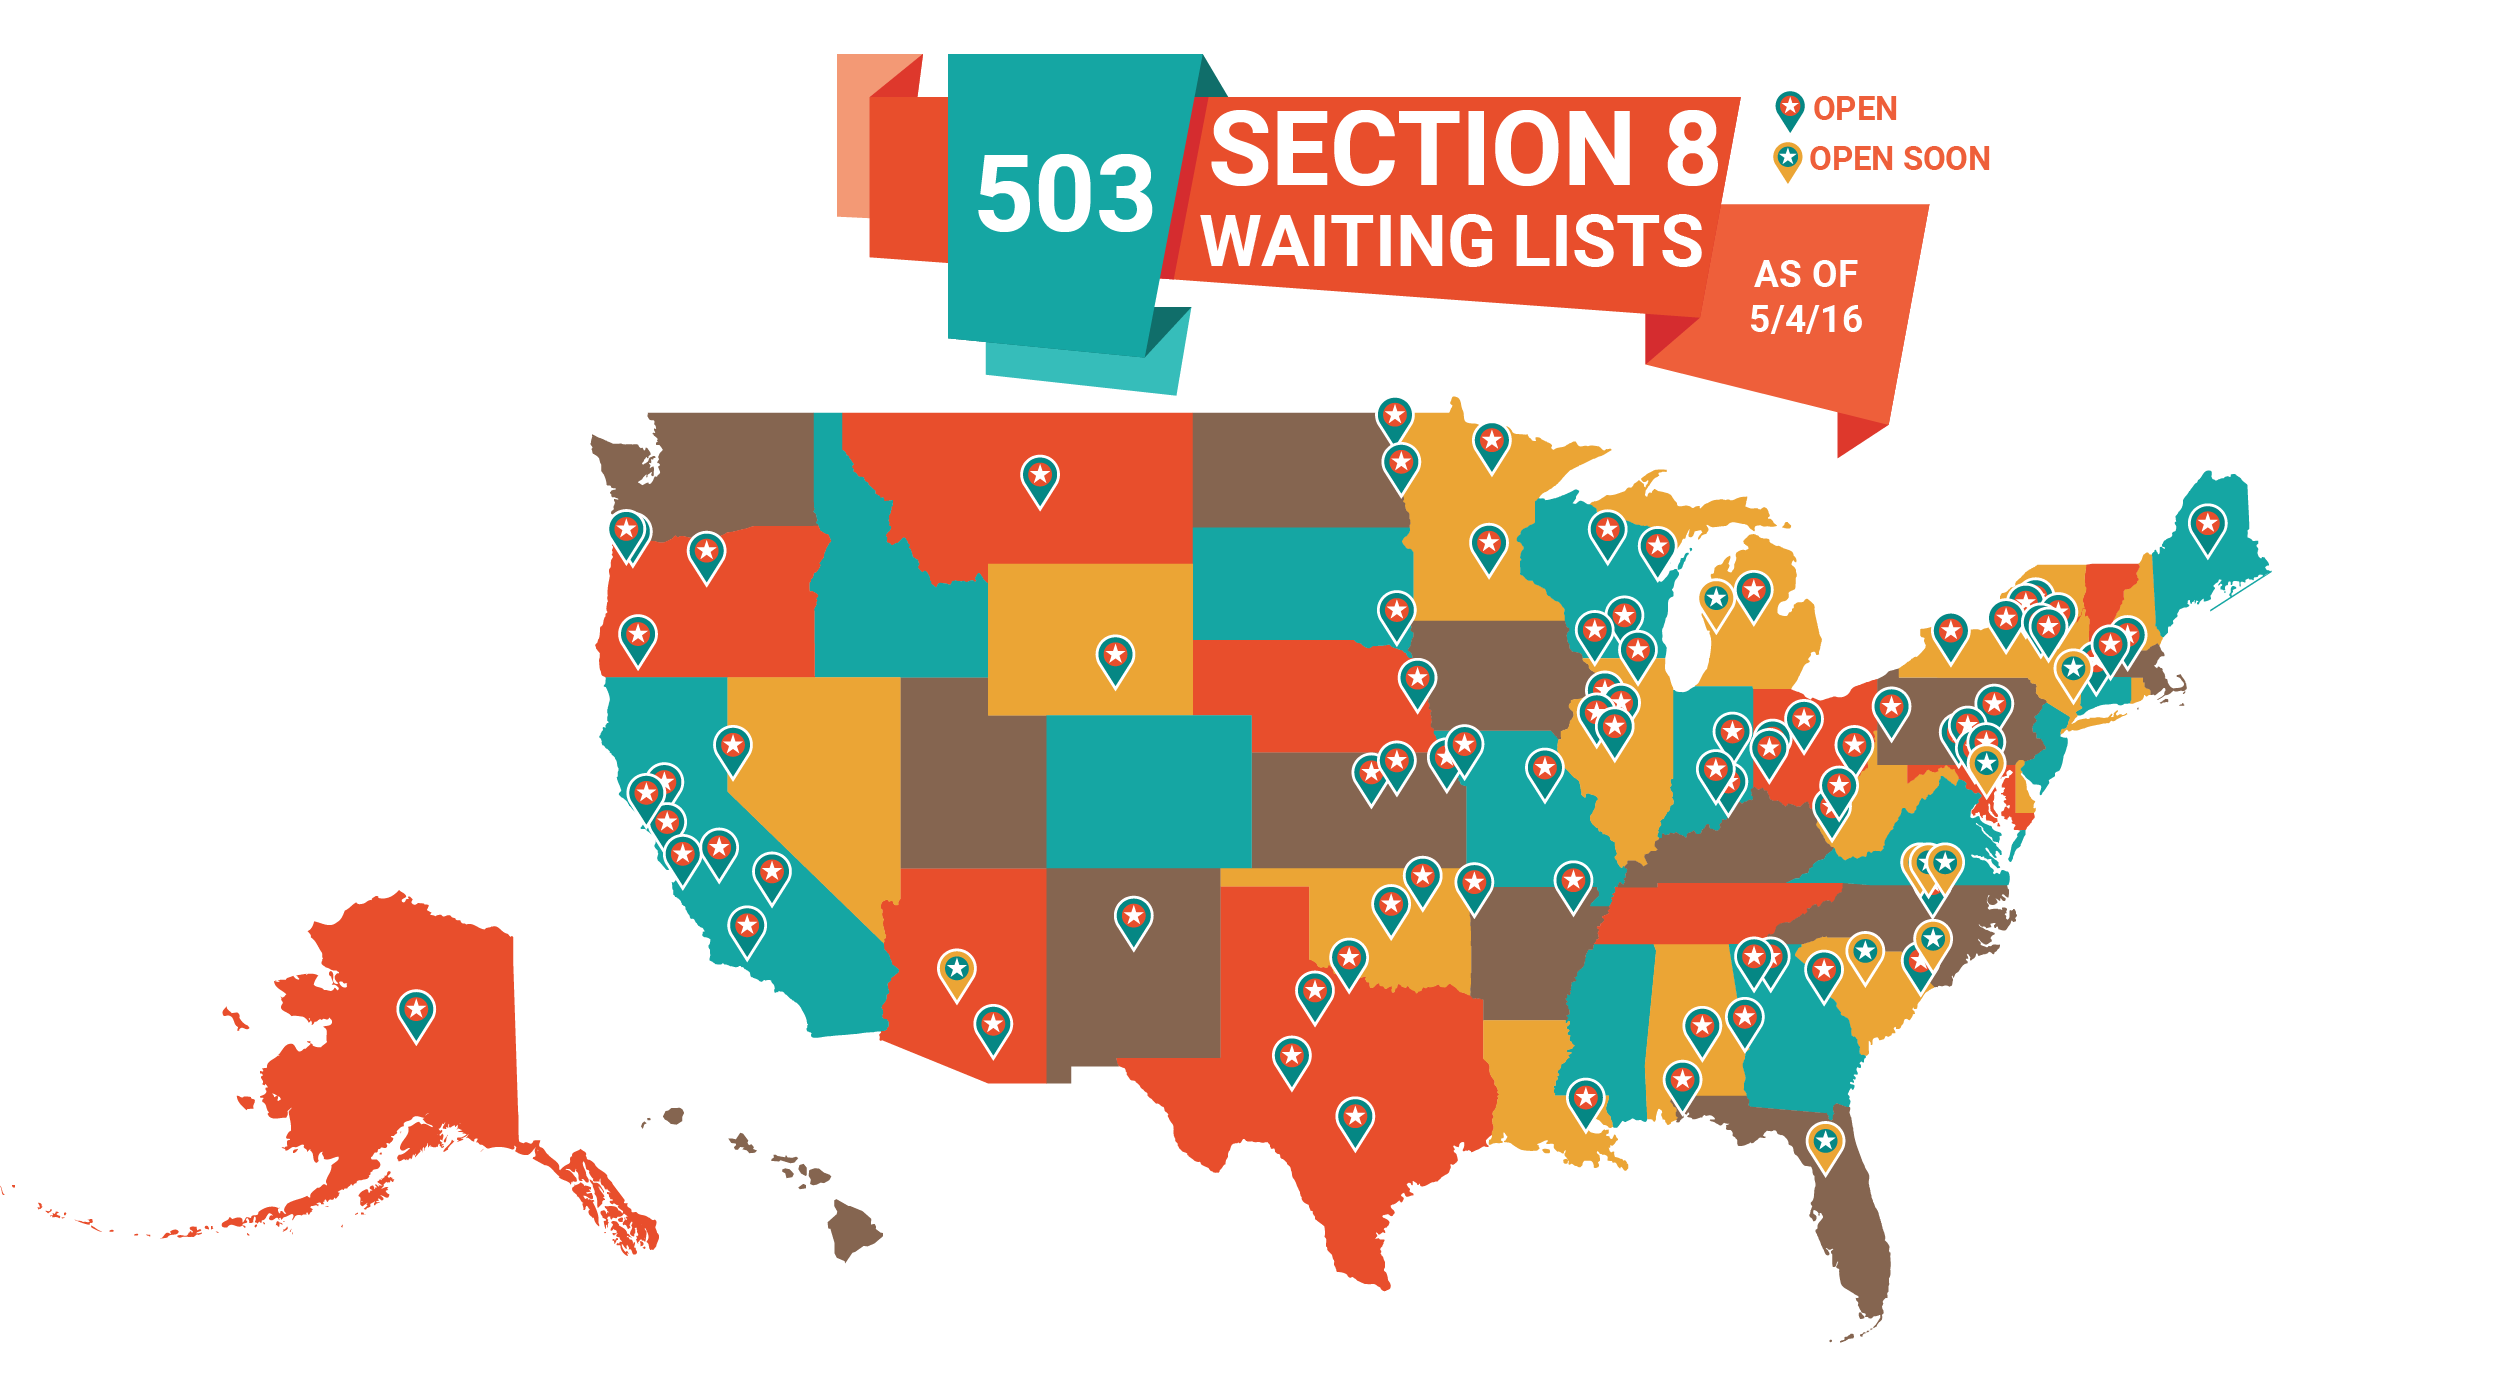 New Section 8 Waiting List Openings 5 4 2016 Affordable Housing